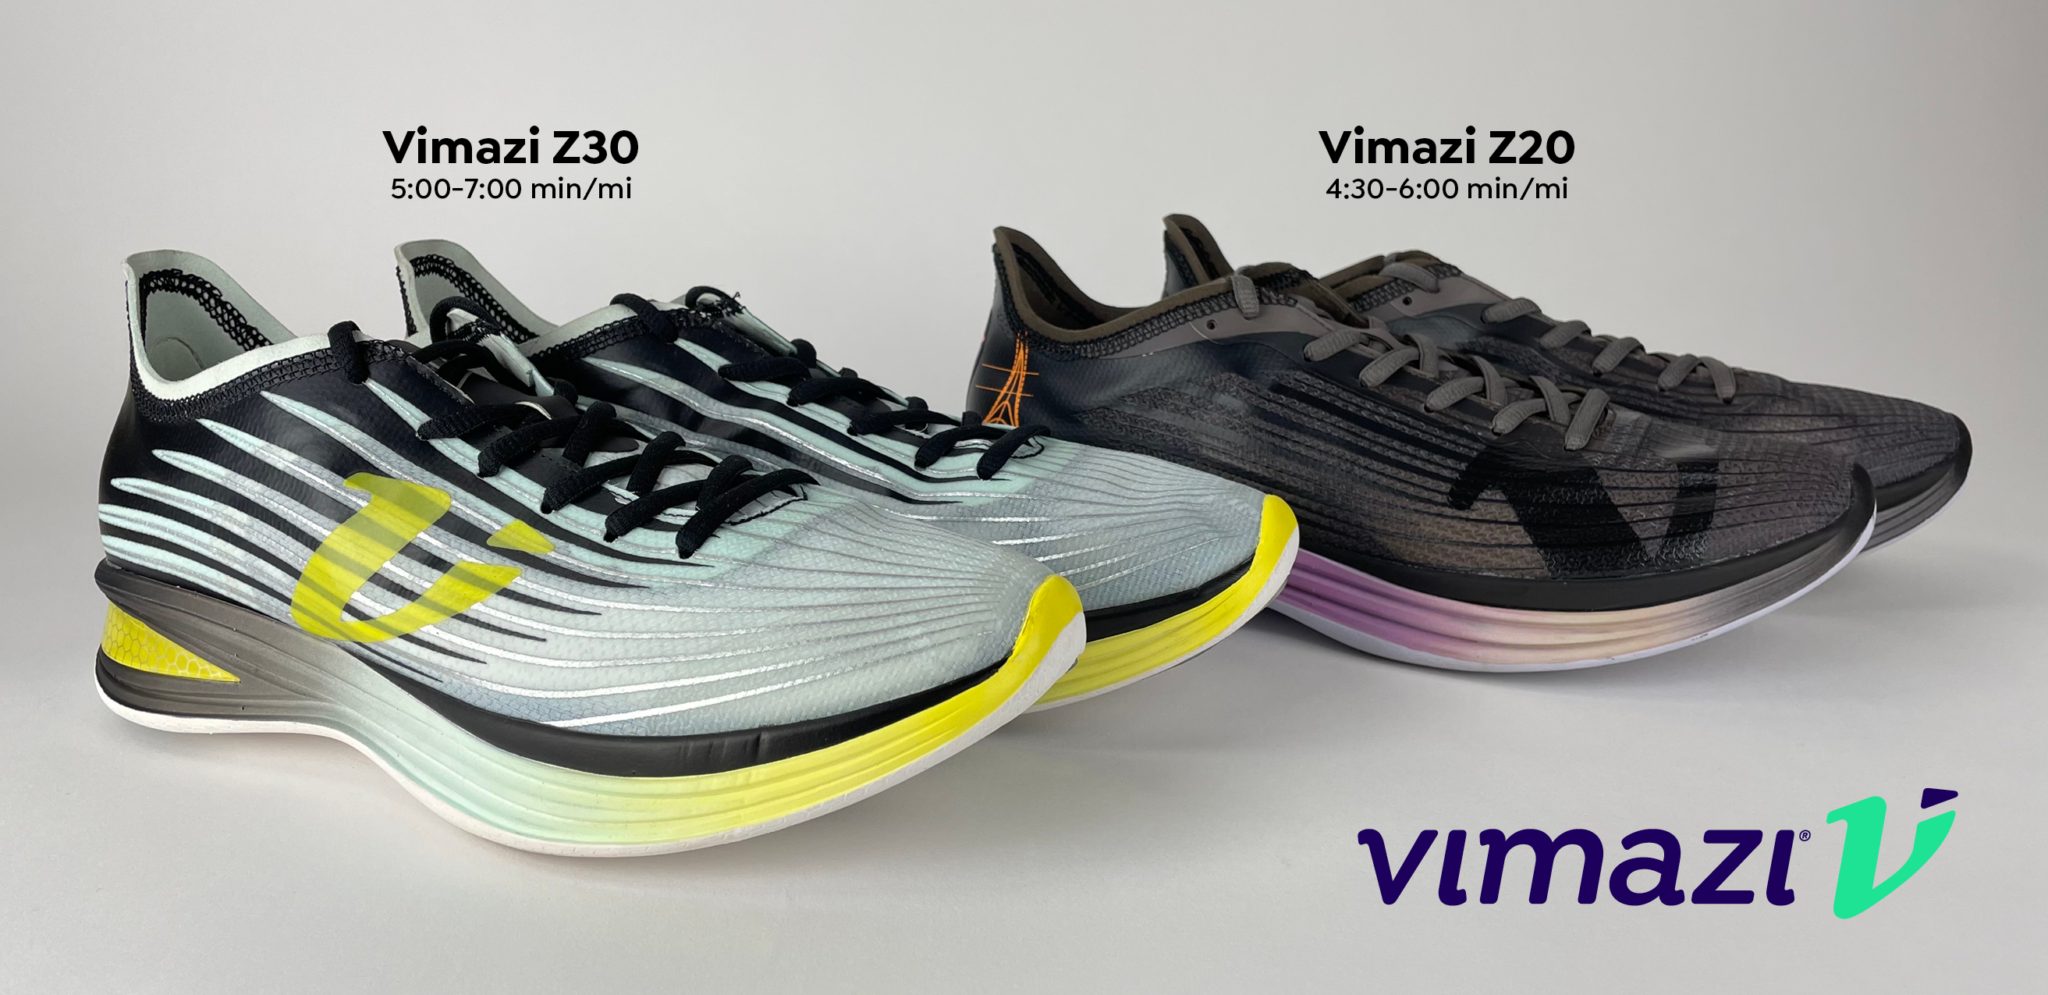 This startup is getting ready to launch running shoes based on how fast you run a mile